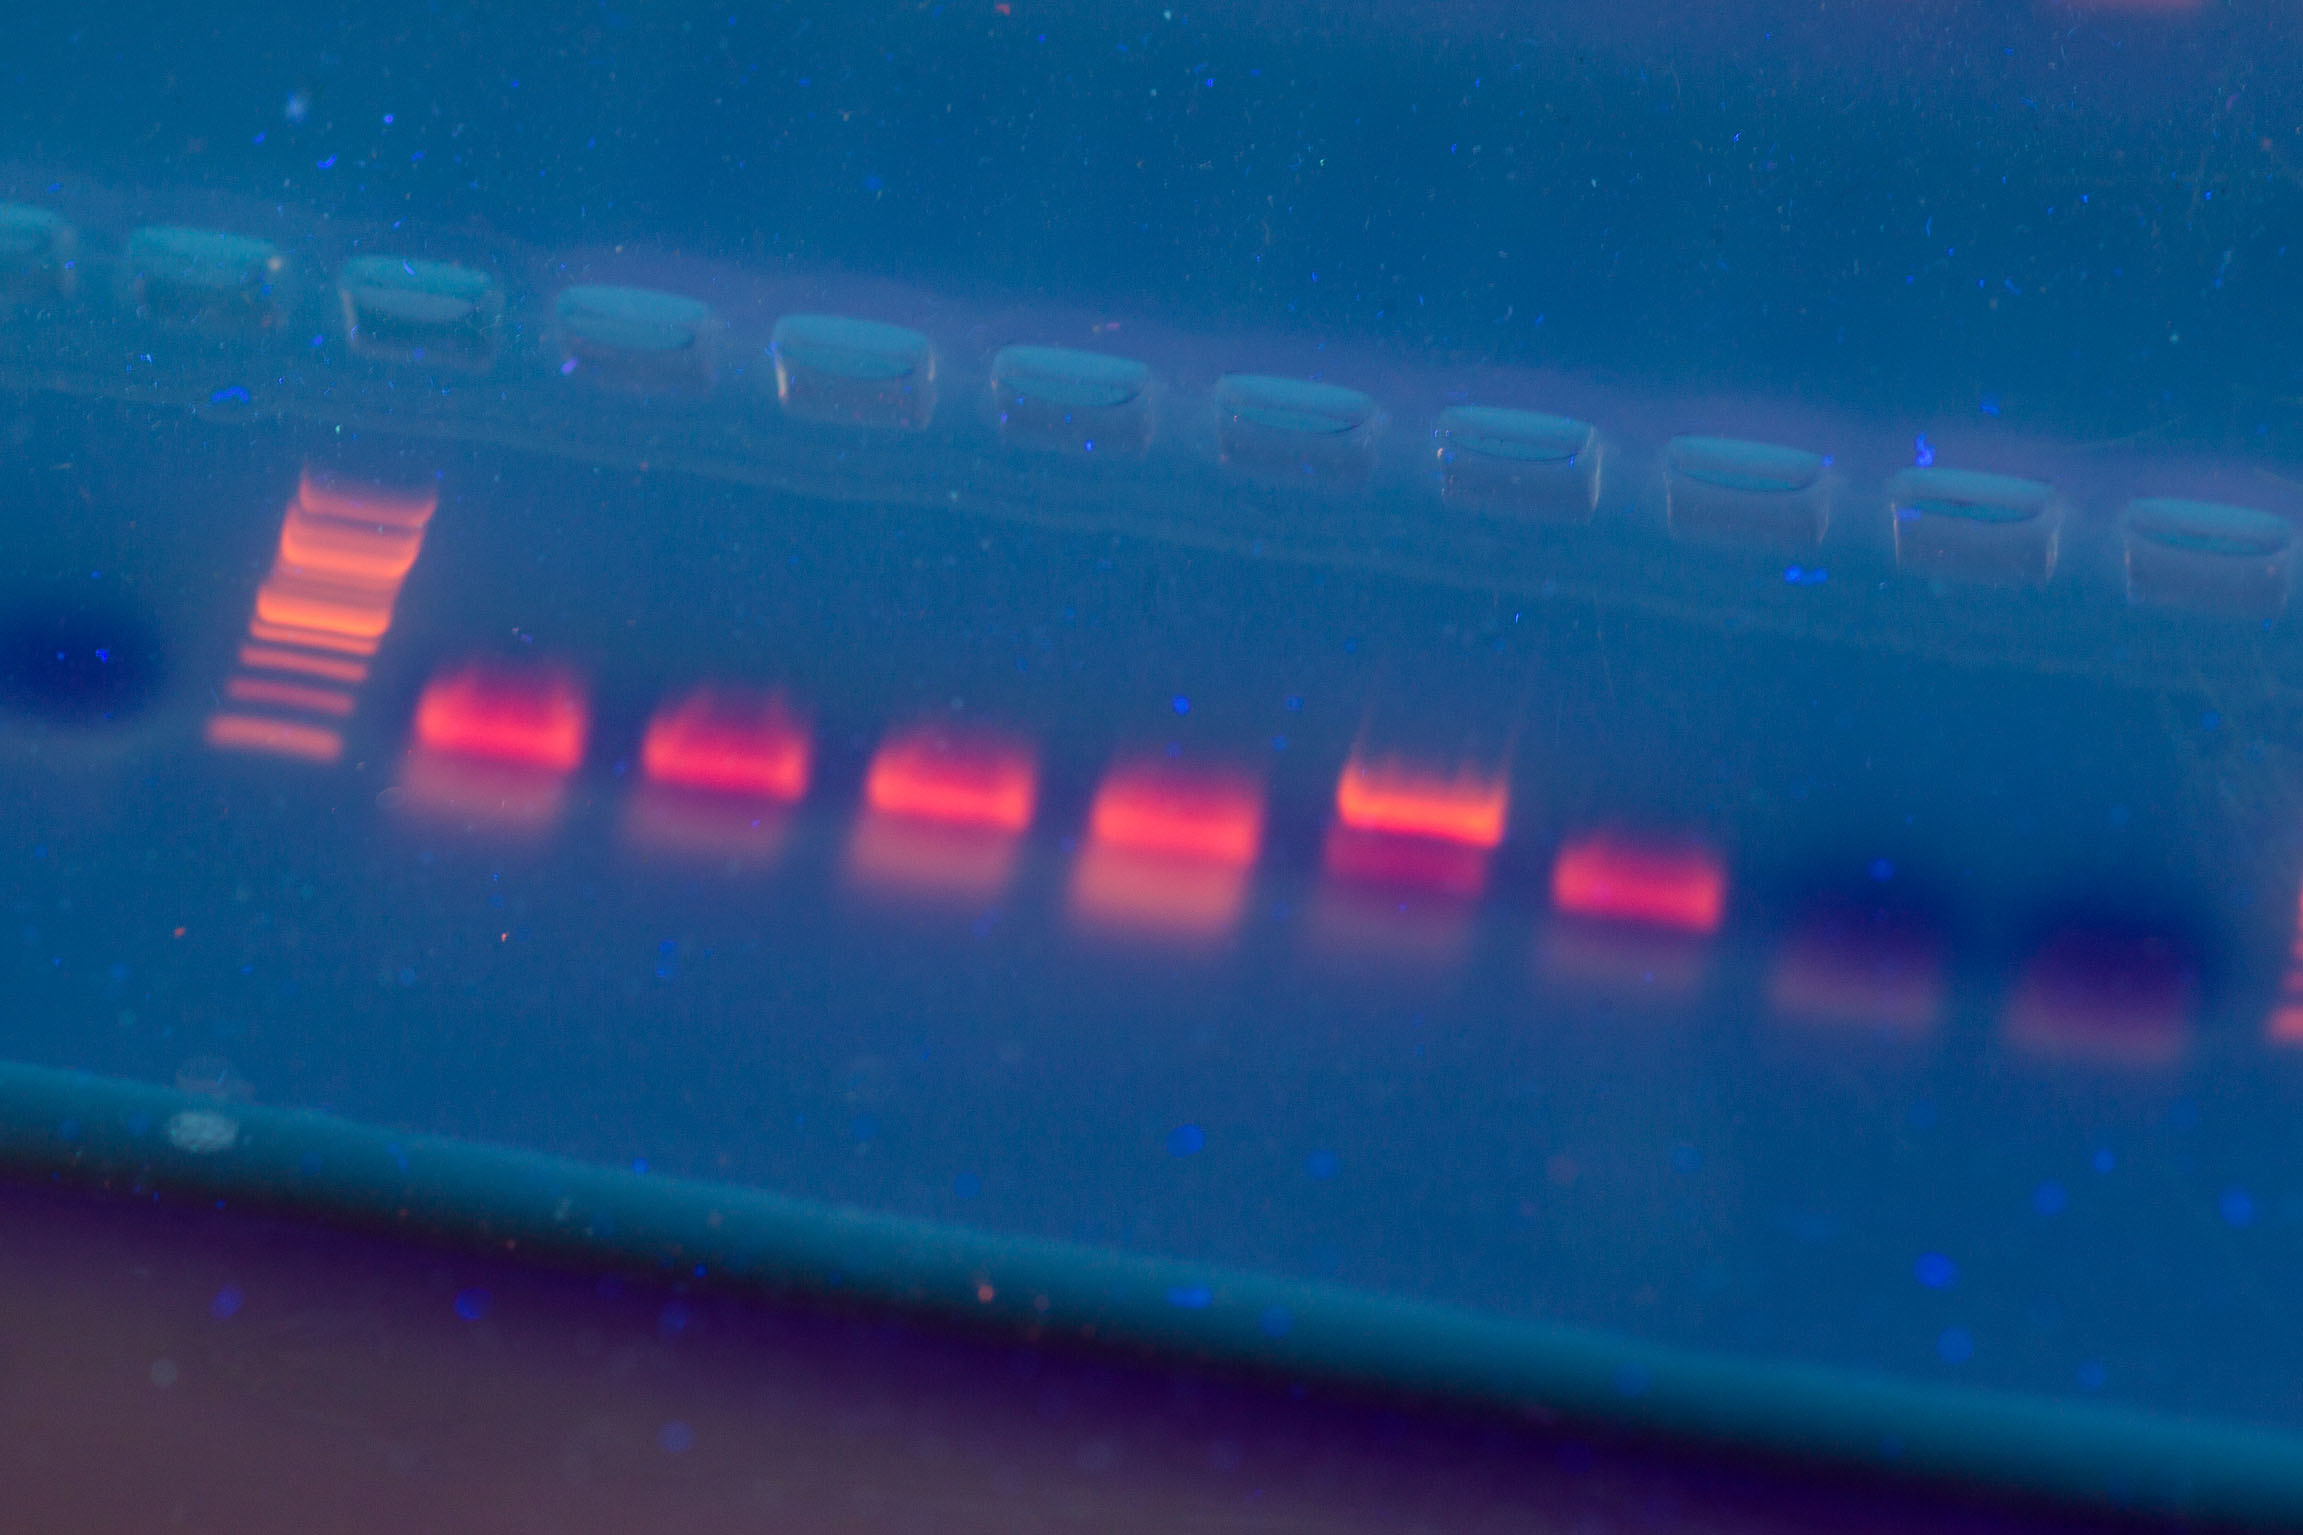 Huidige PCR-methode